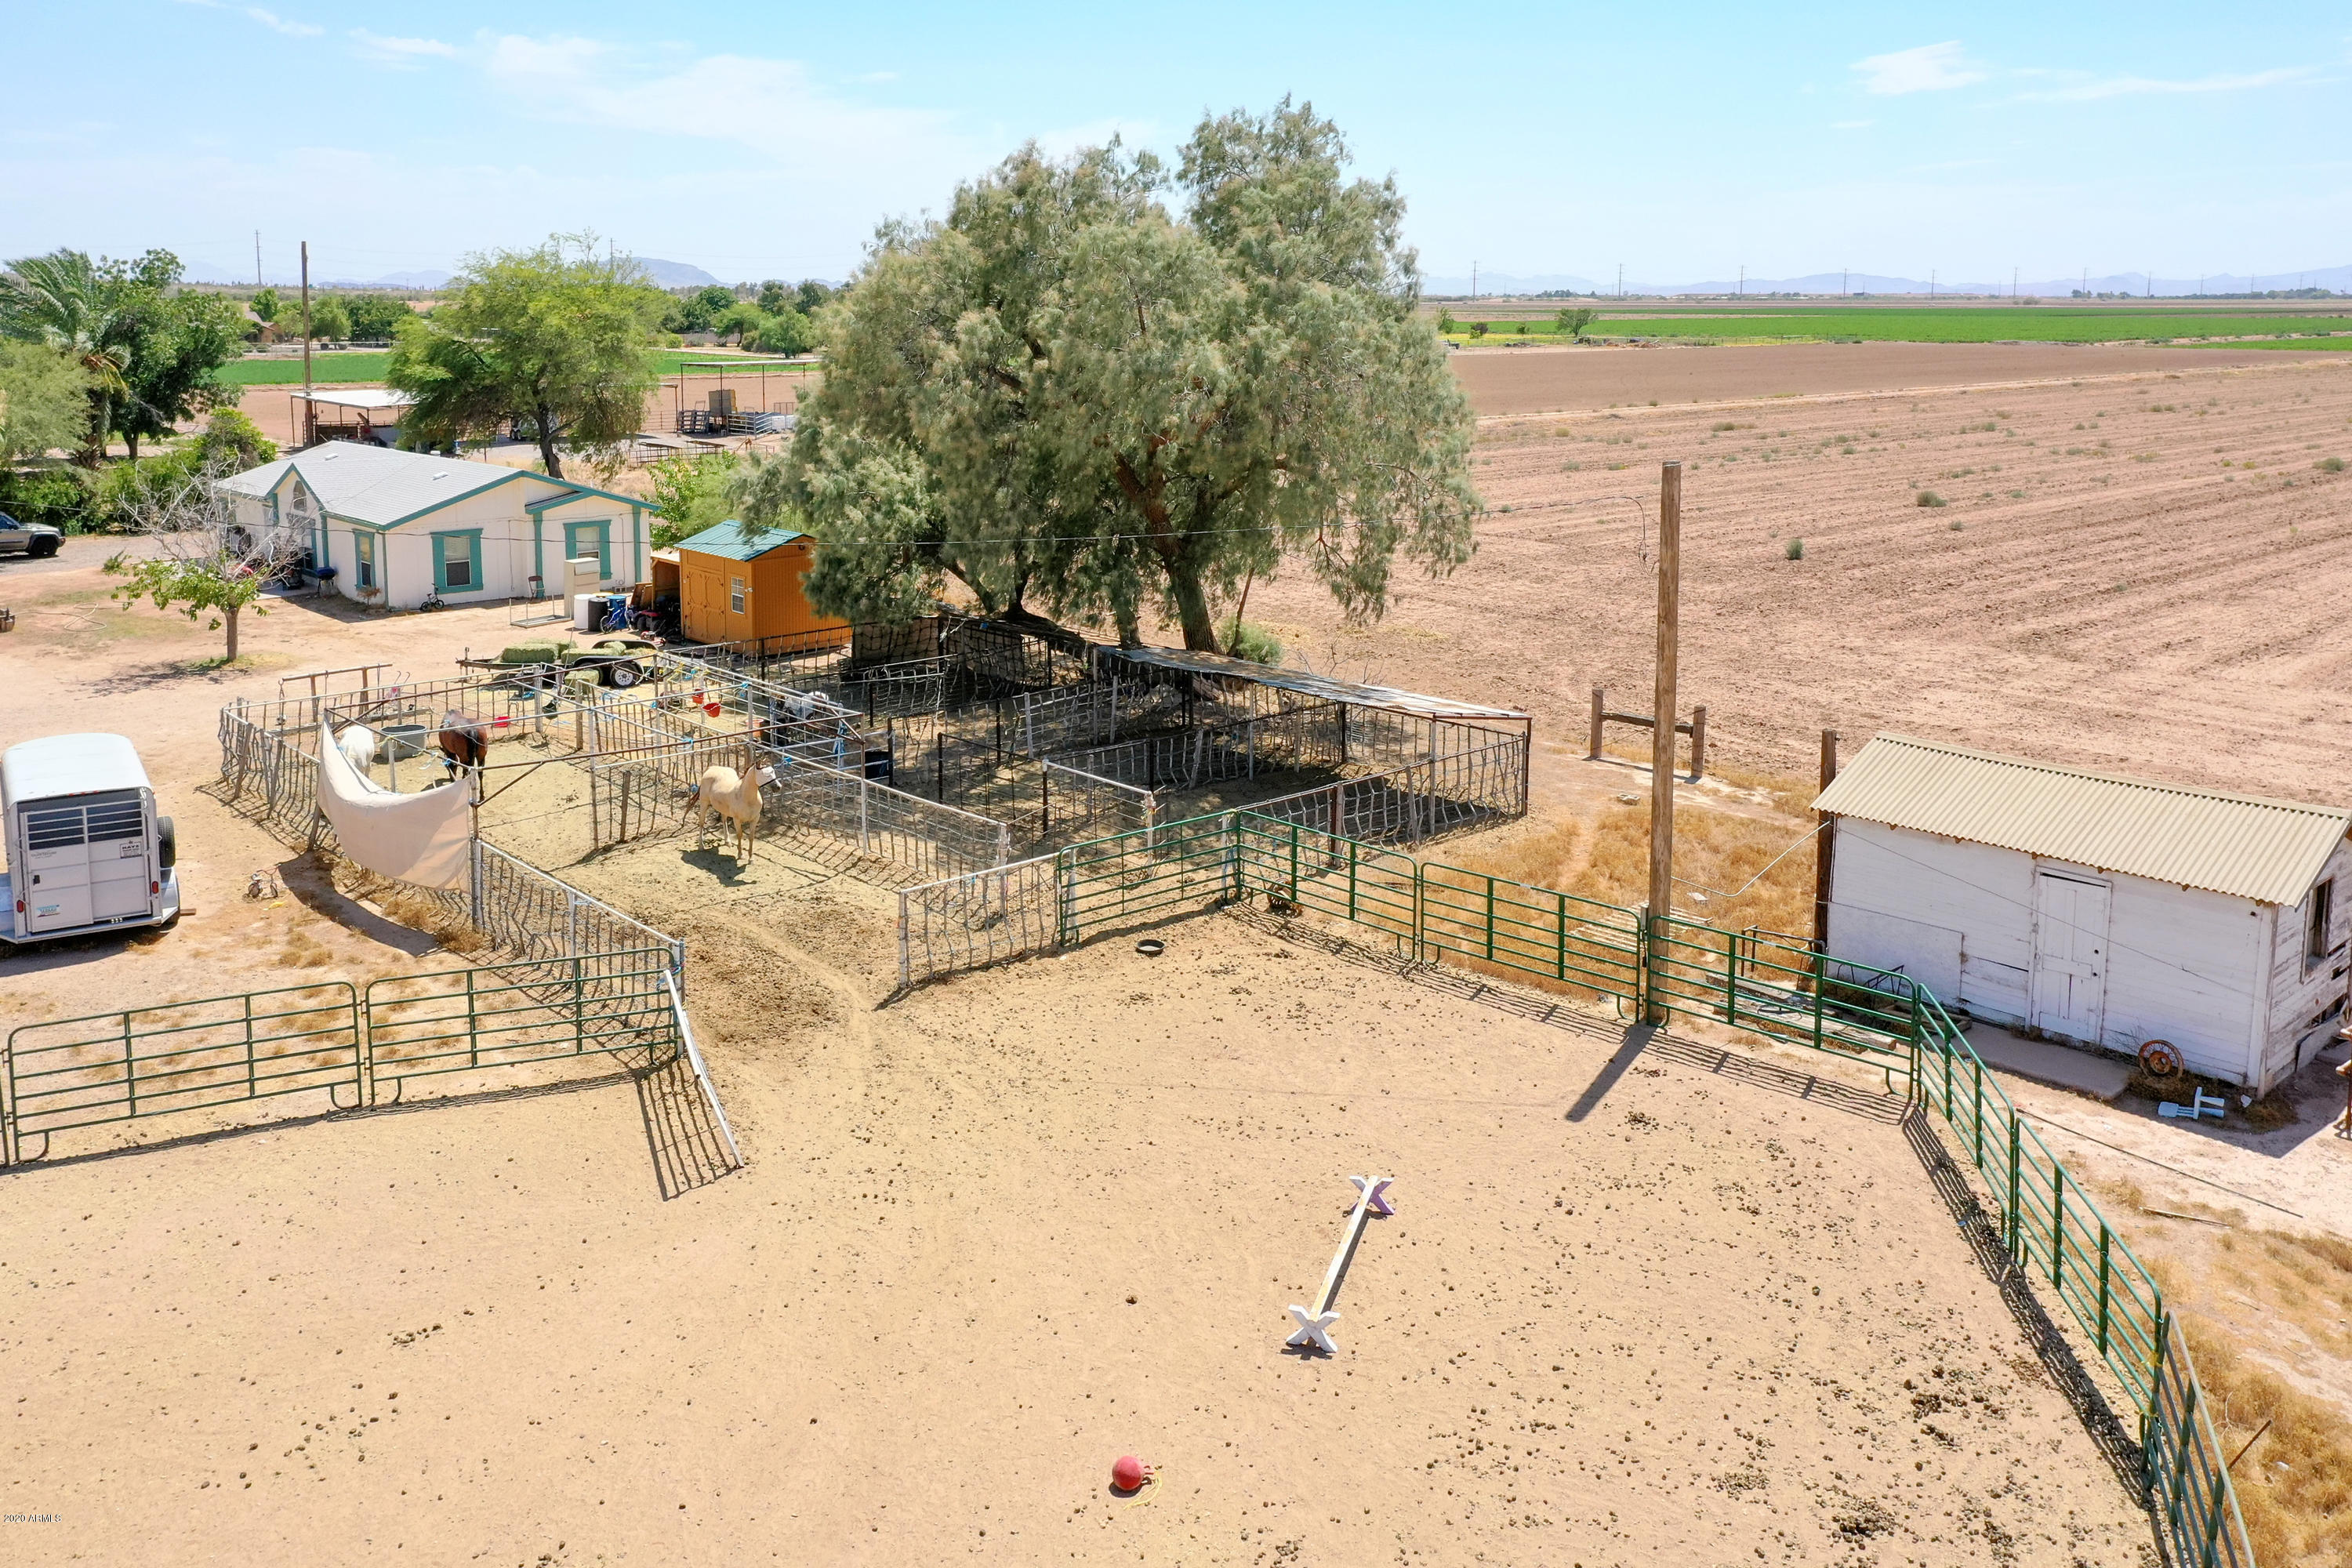 3450 S PEART Road, Casa Grande, Arizona 85193, ,Lots And Land,For Sale,3450 S PEART Road,6103996